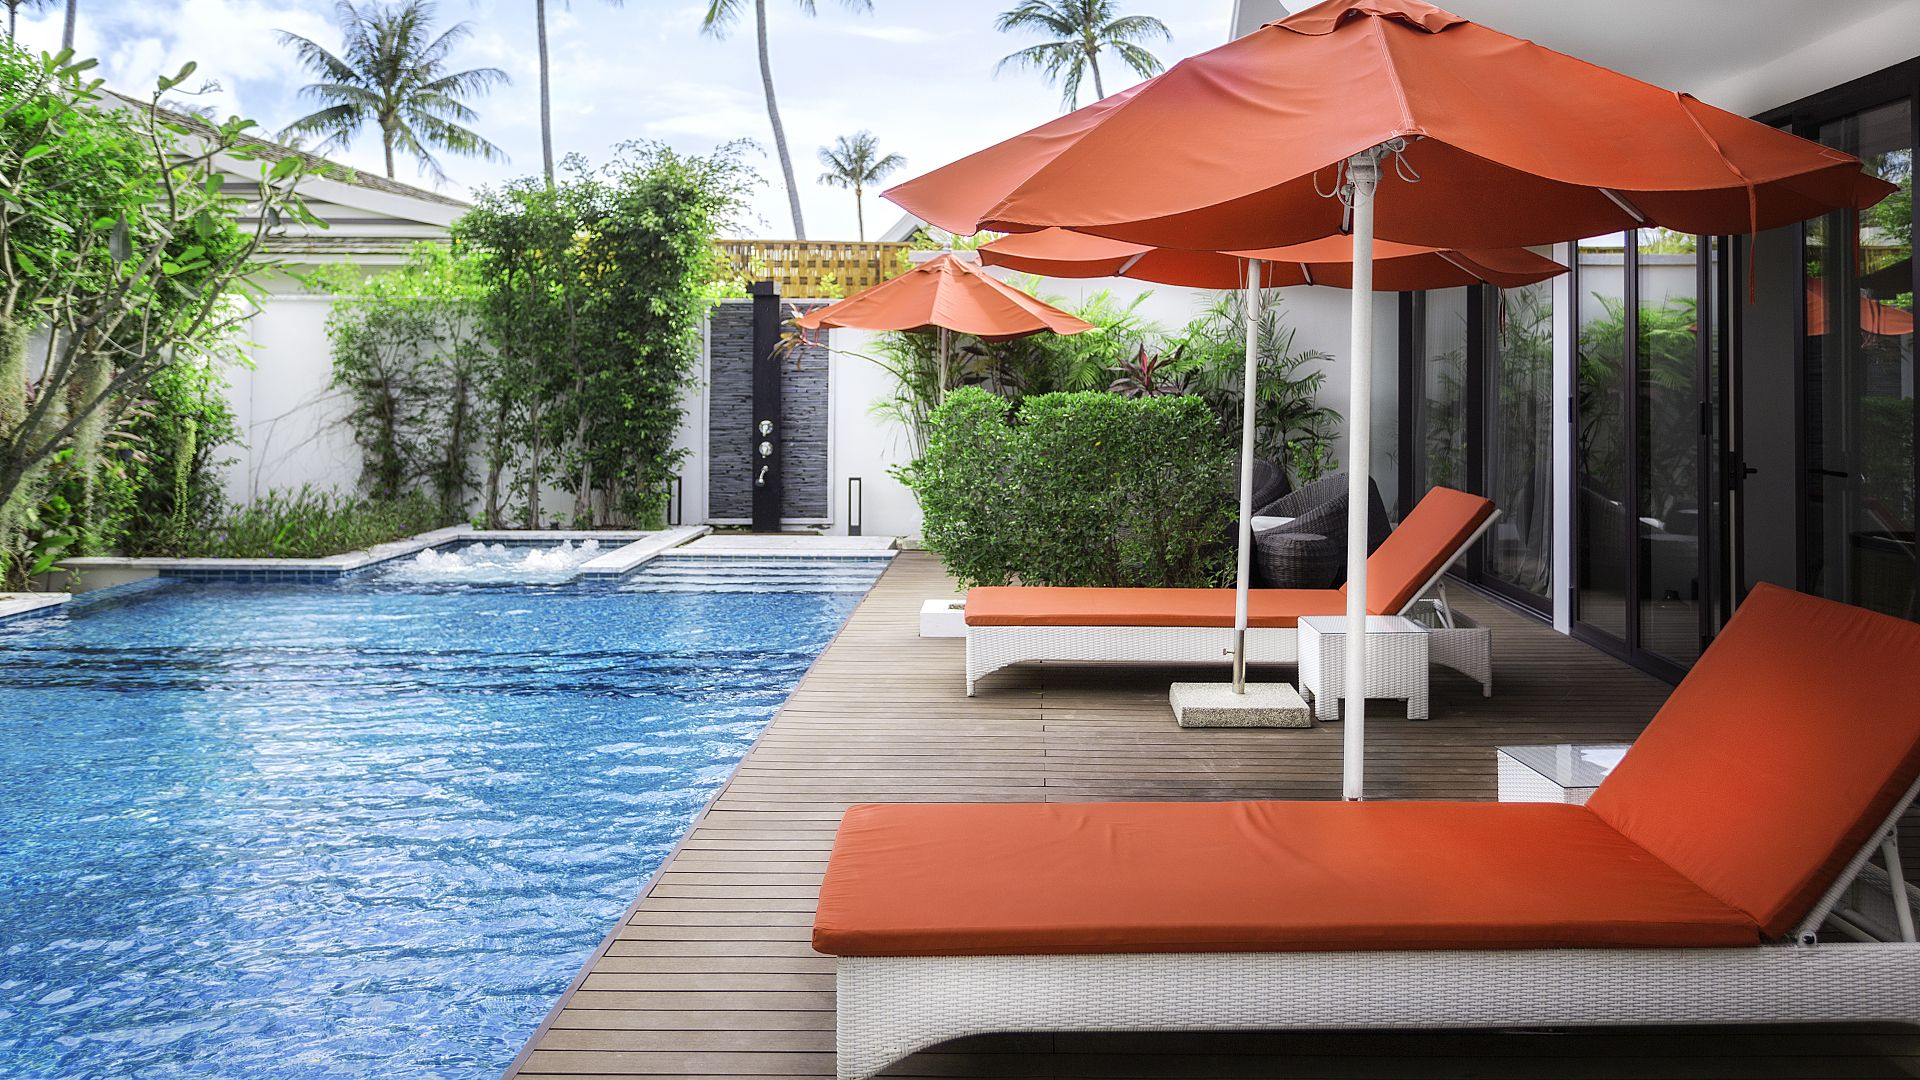 Interior photography in Thailand